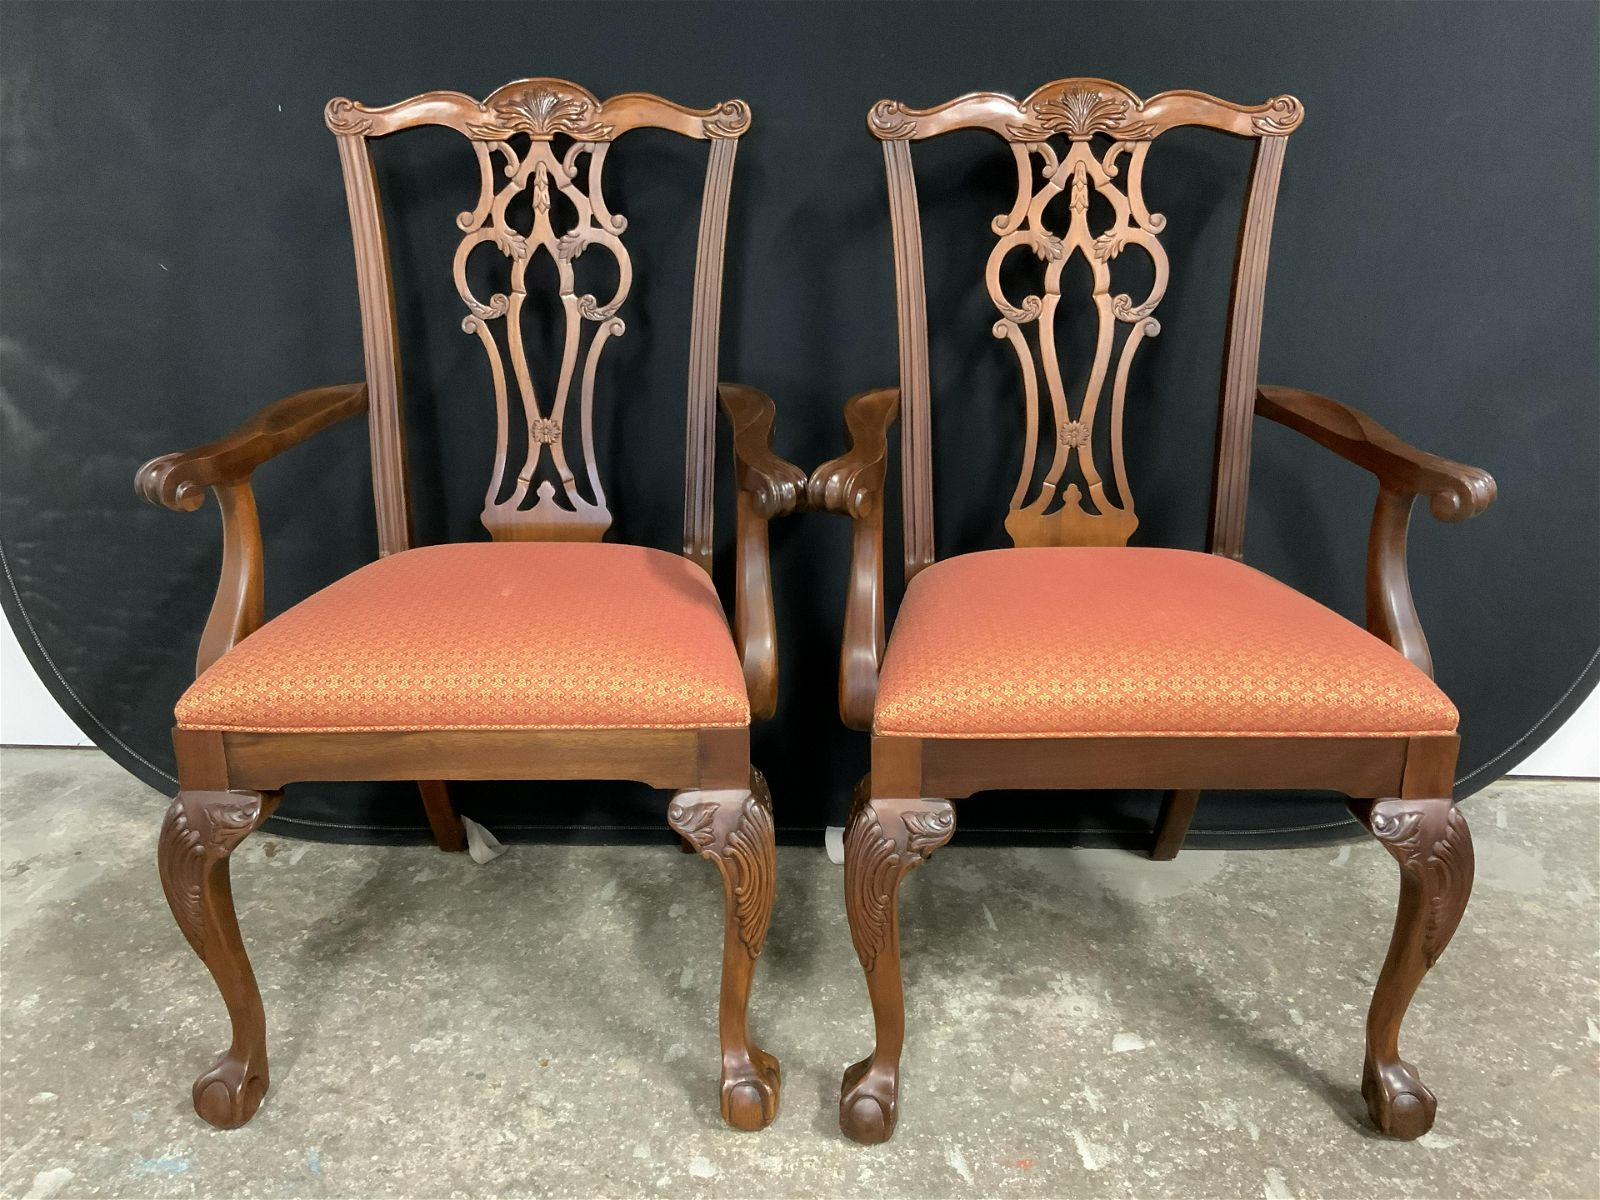 Set 6 ETHAN ALLEN Mahogany Collection Chairs